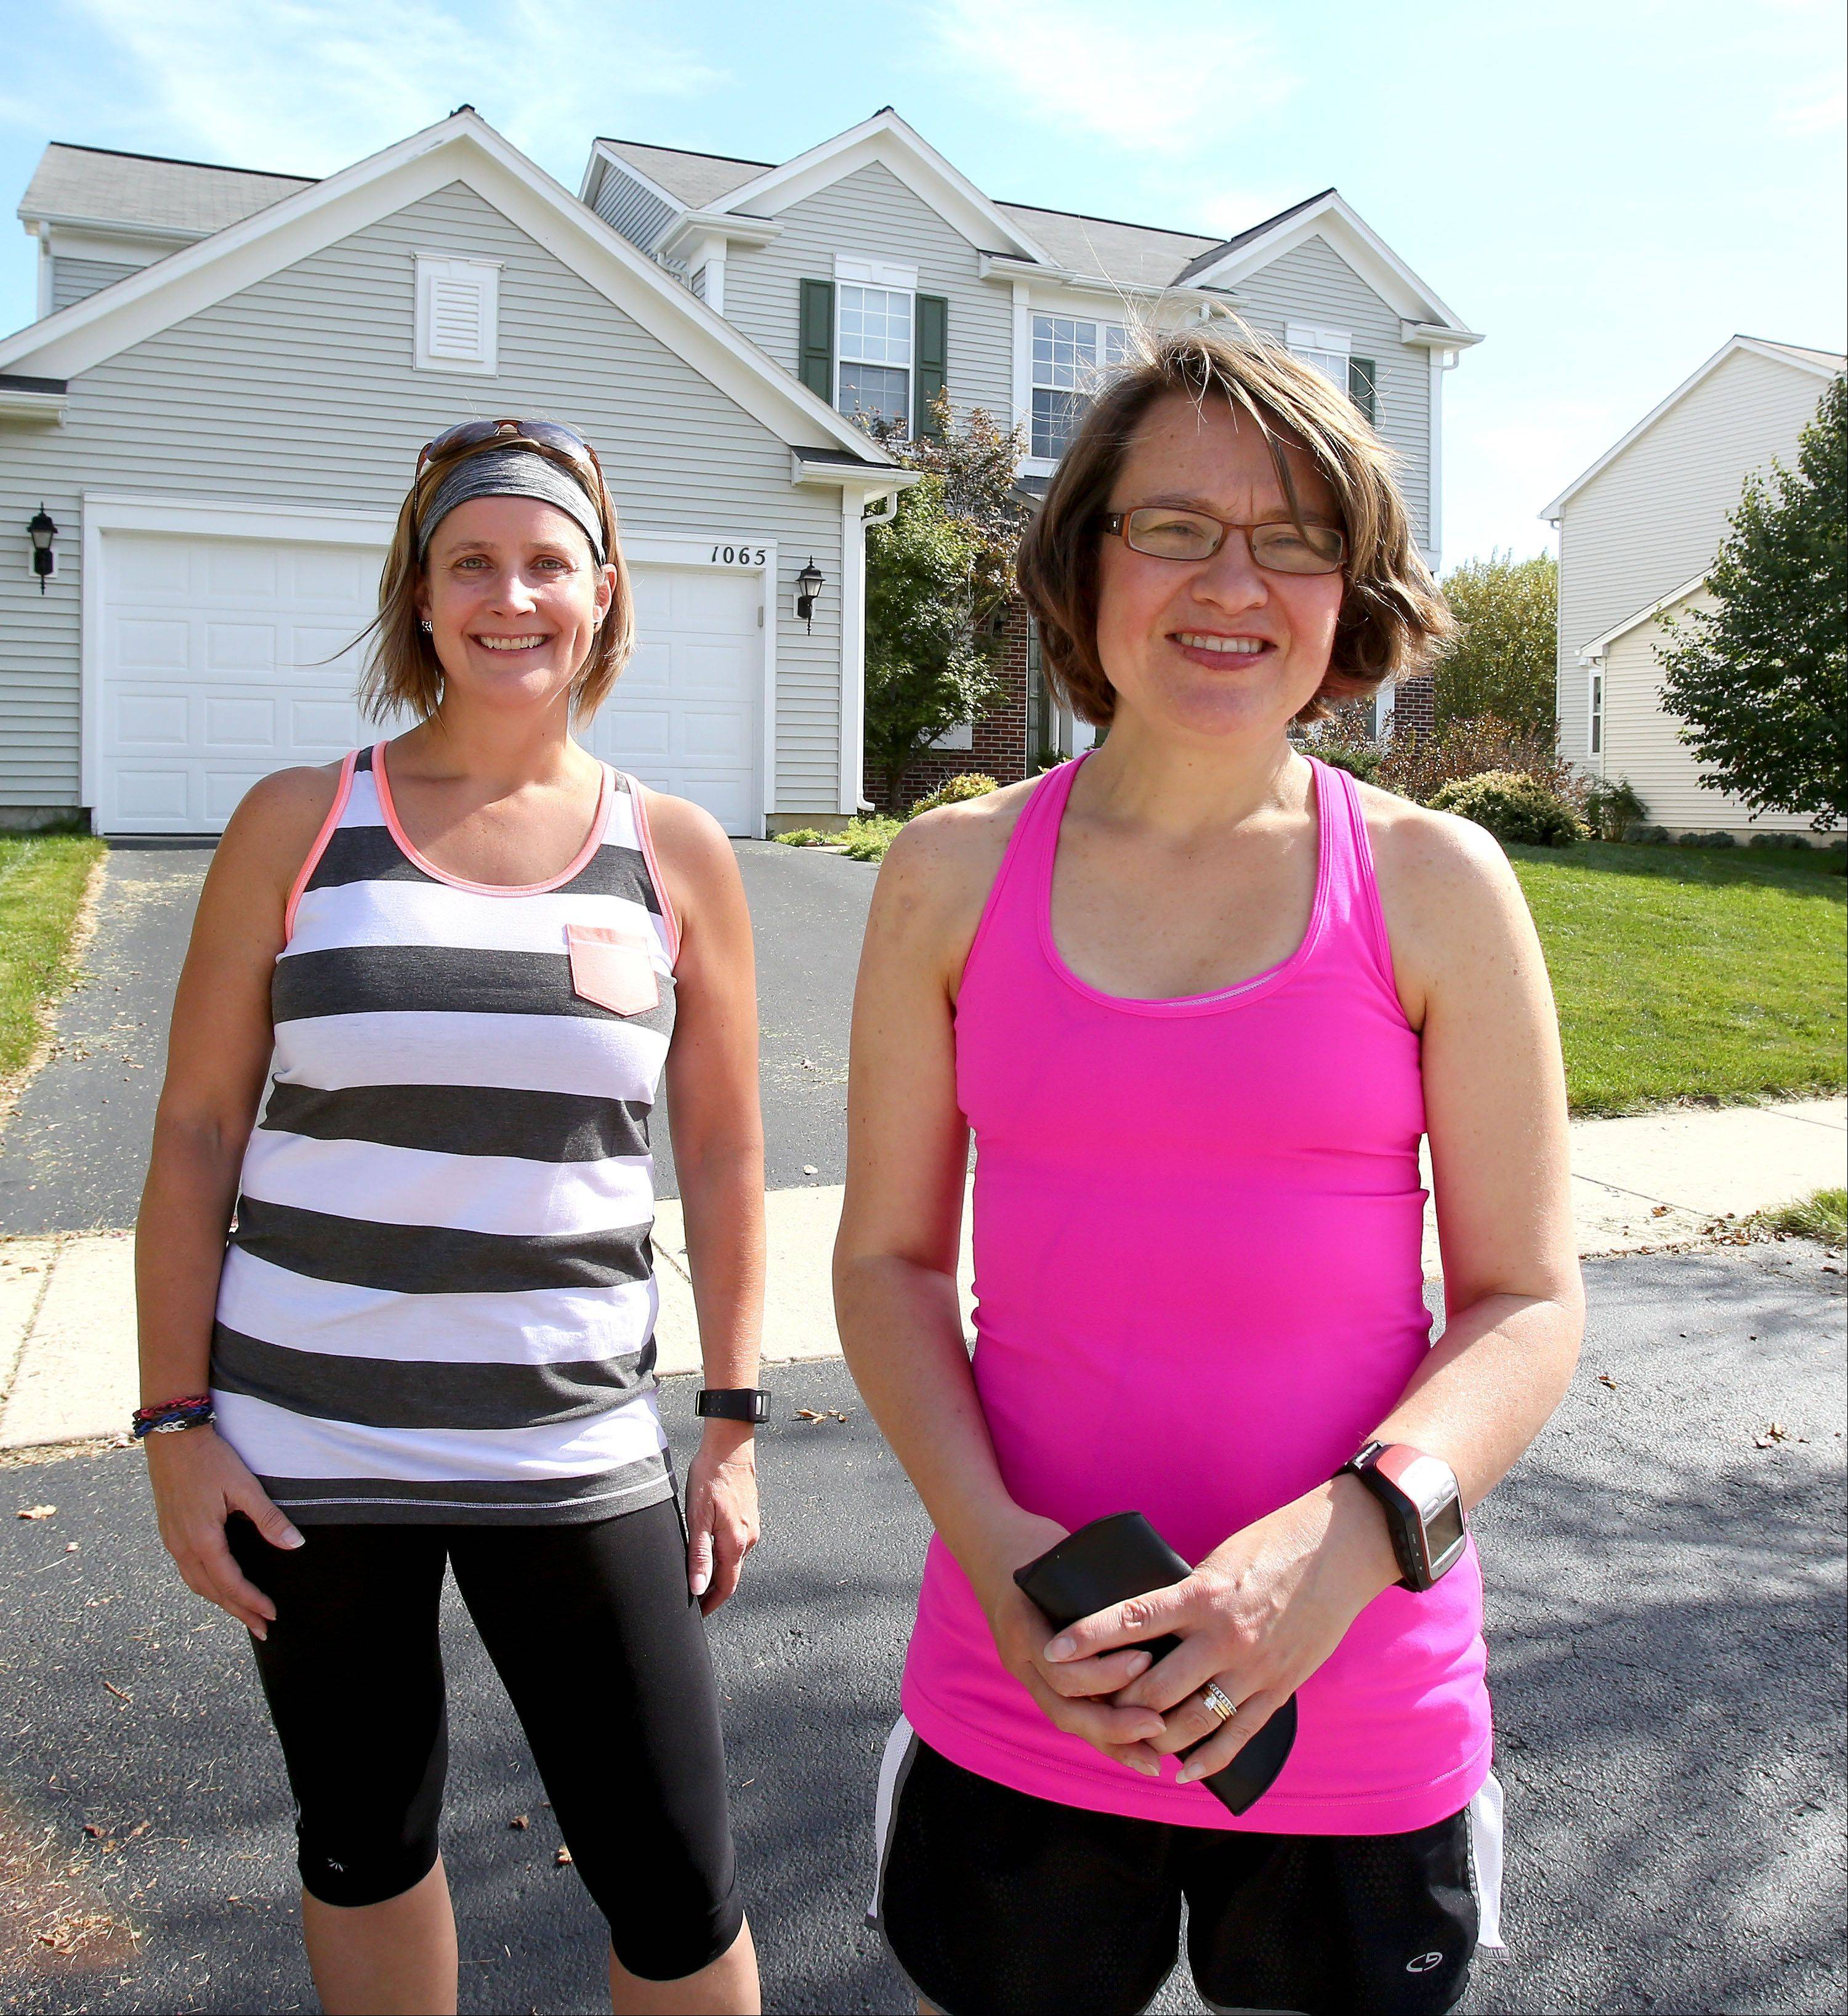 Marathon runners Danielle Steimel and Carrie Gasik, both of Aurora, will be running in the Chicago Marathon on Sunday. This will be the first marathon for Gasik and the 18th for Steimel.